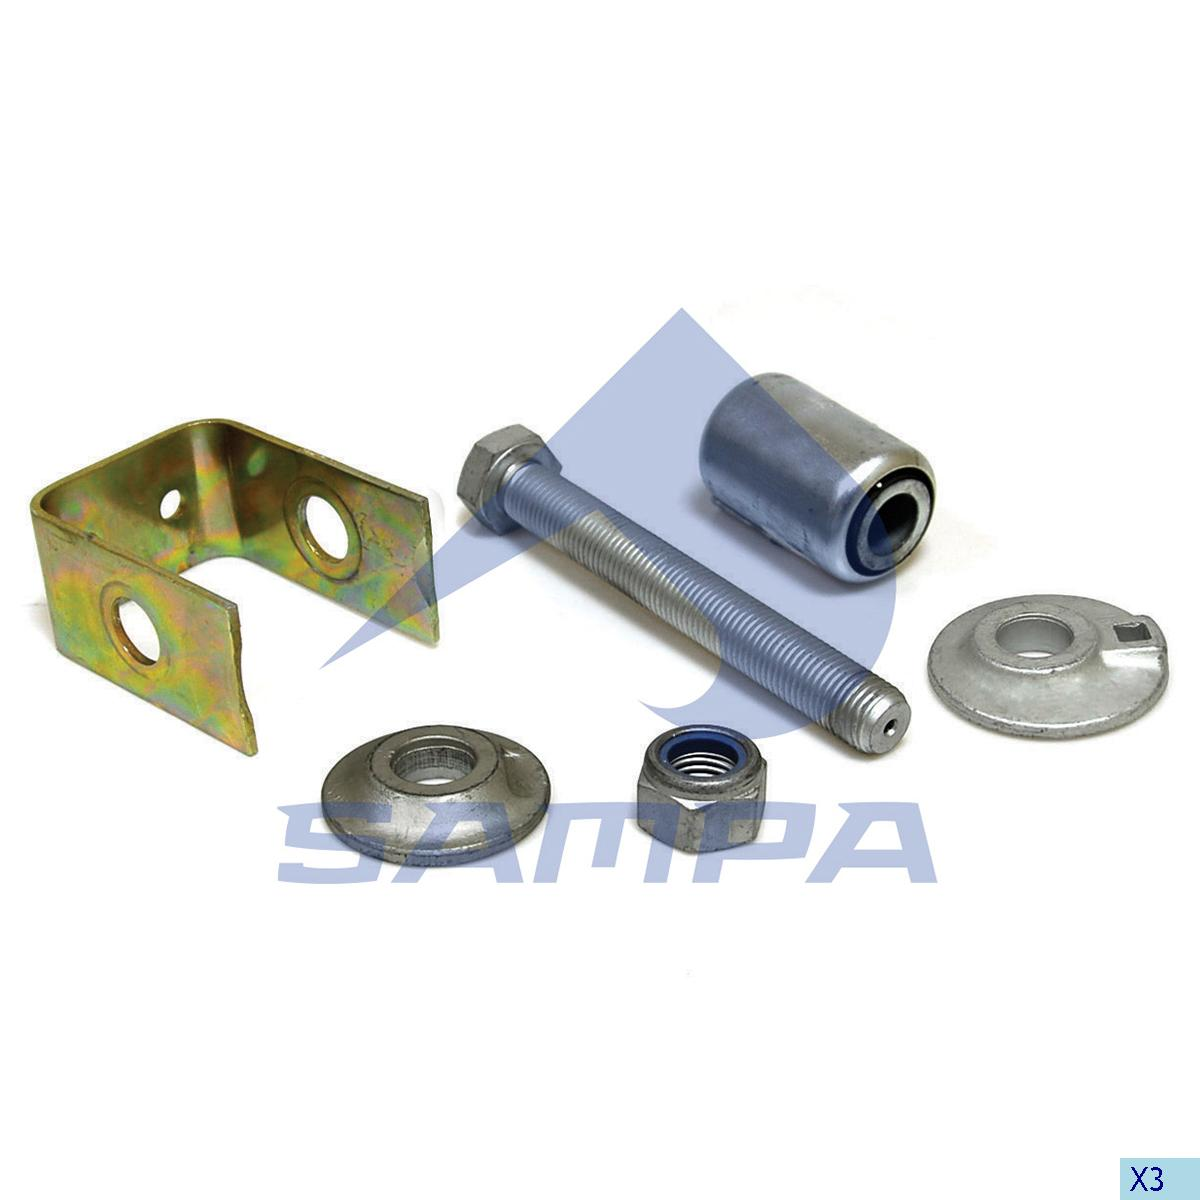 Repair Kit, Spring, Sauer Achsen, Suspension